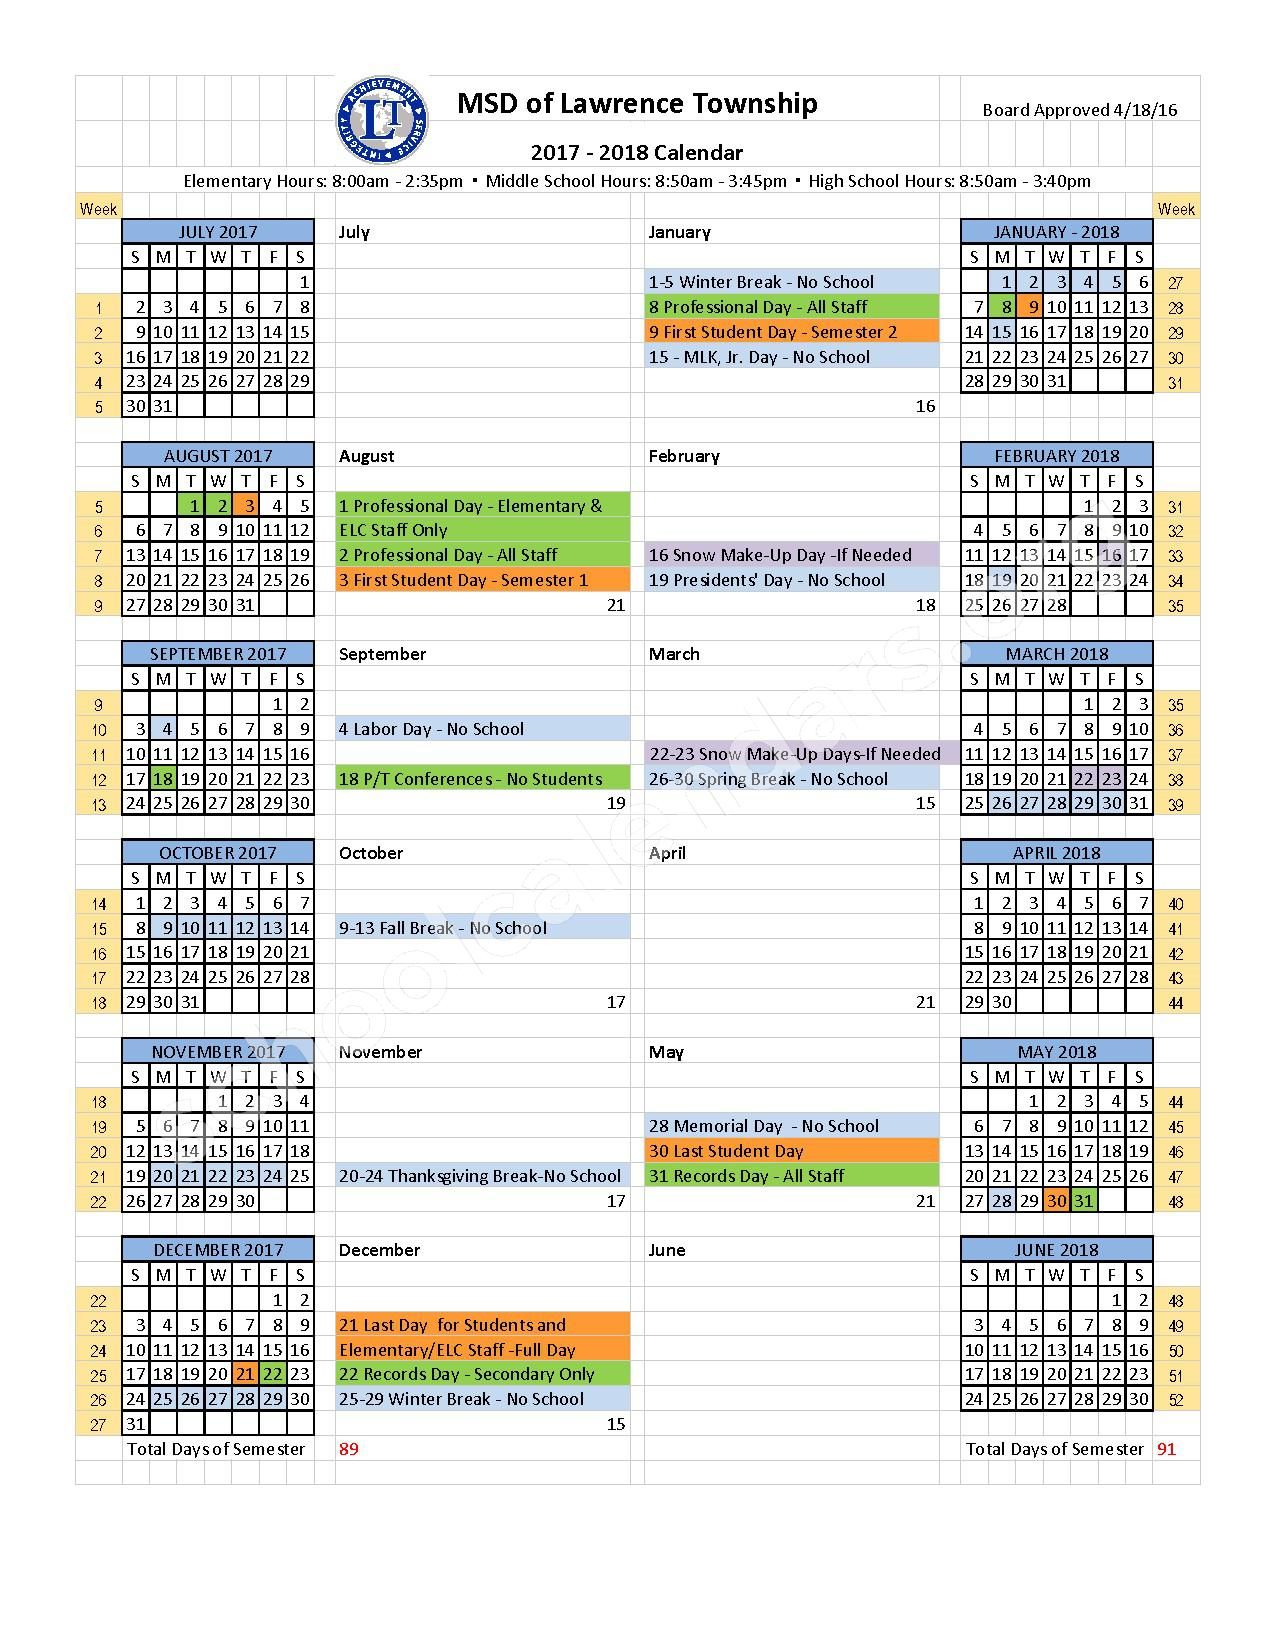 2017 - 2018 School Year Calendar – Metropolitan School District of Lawrence Township – page 1